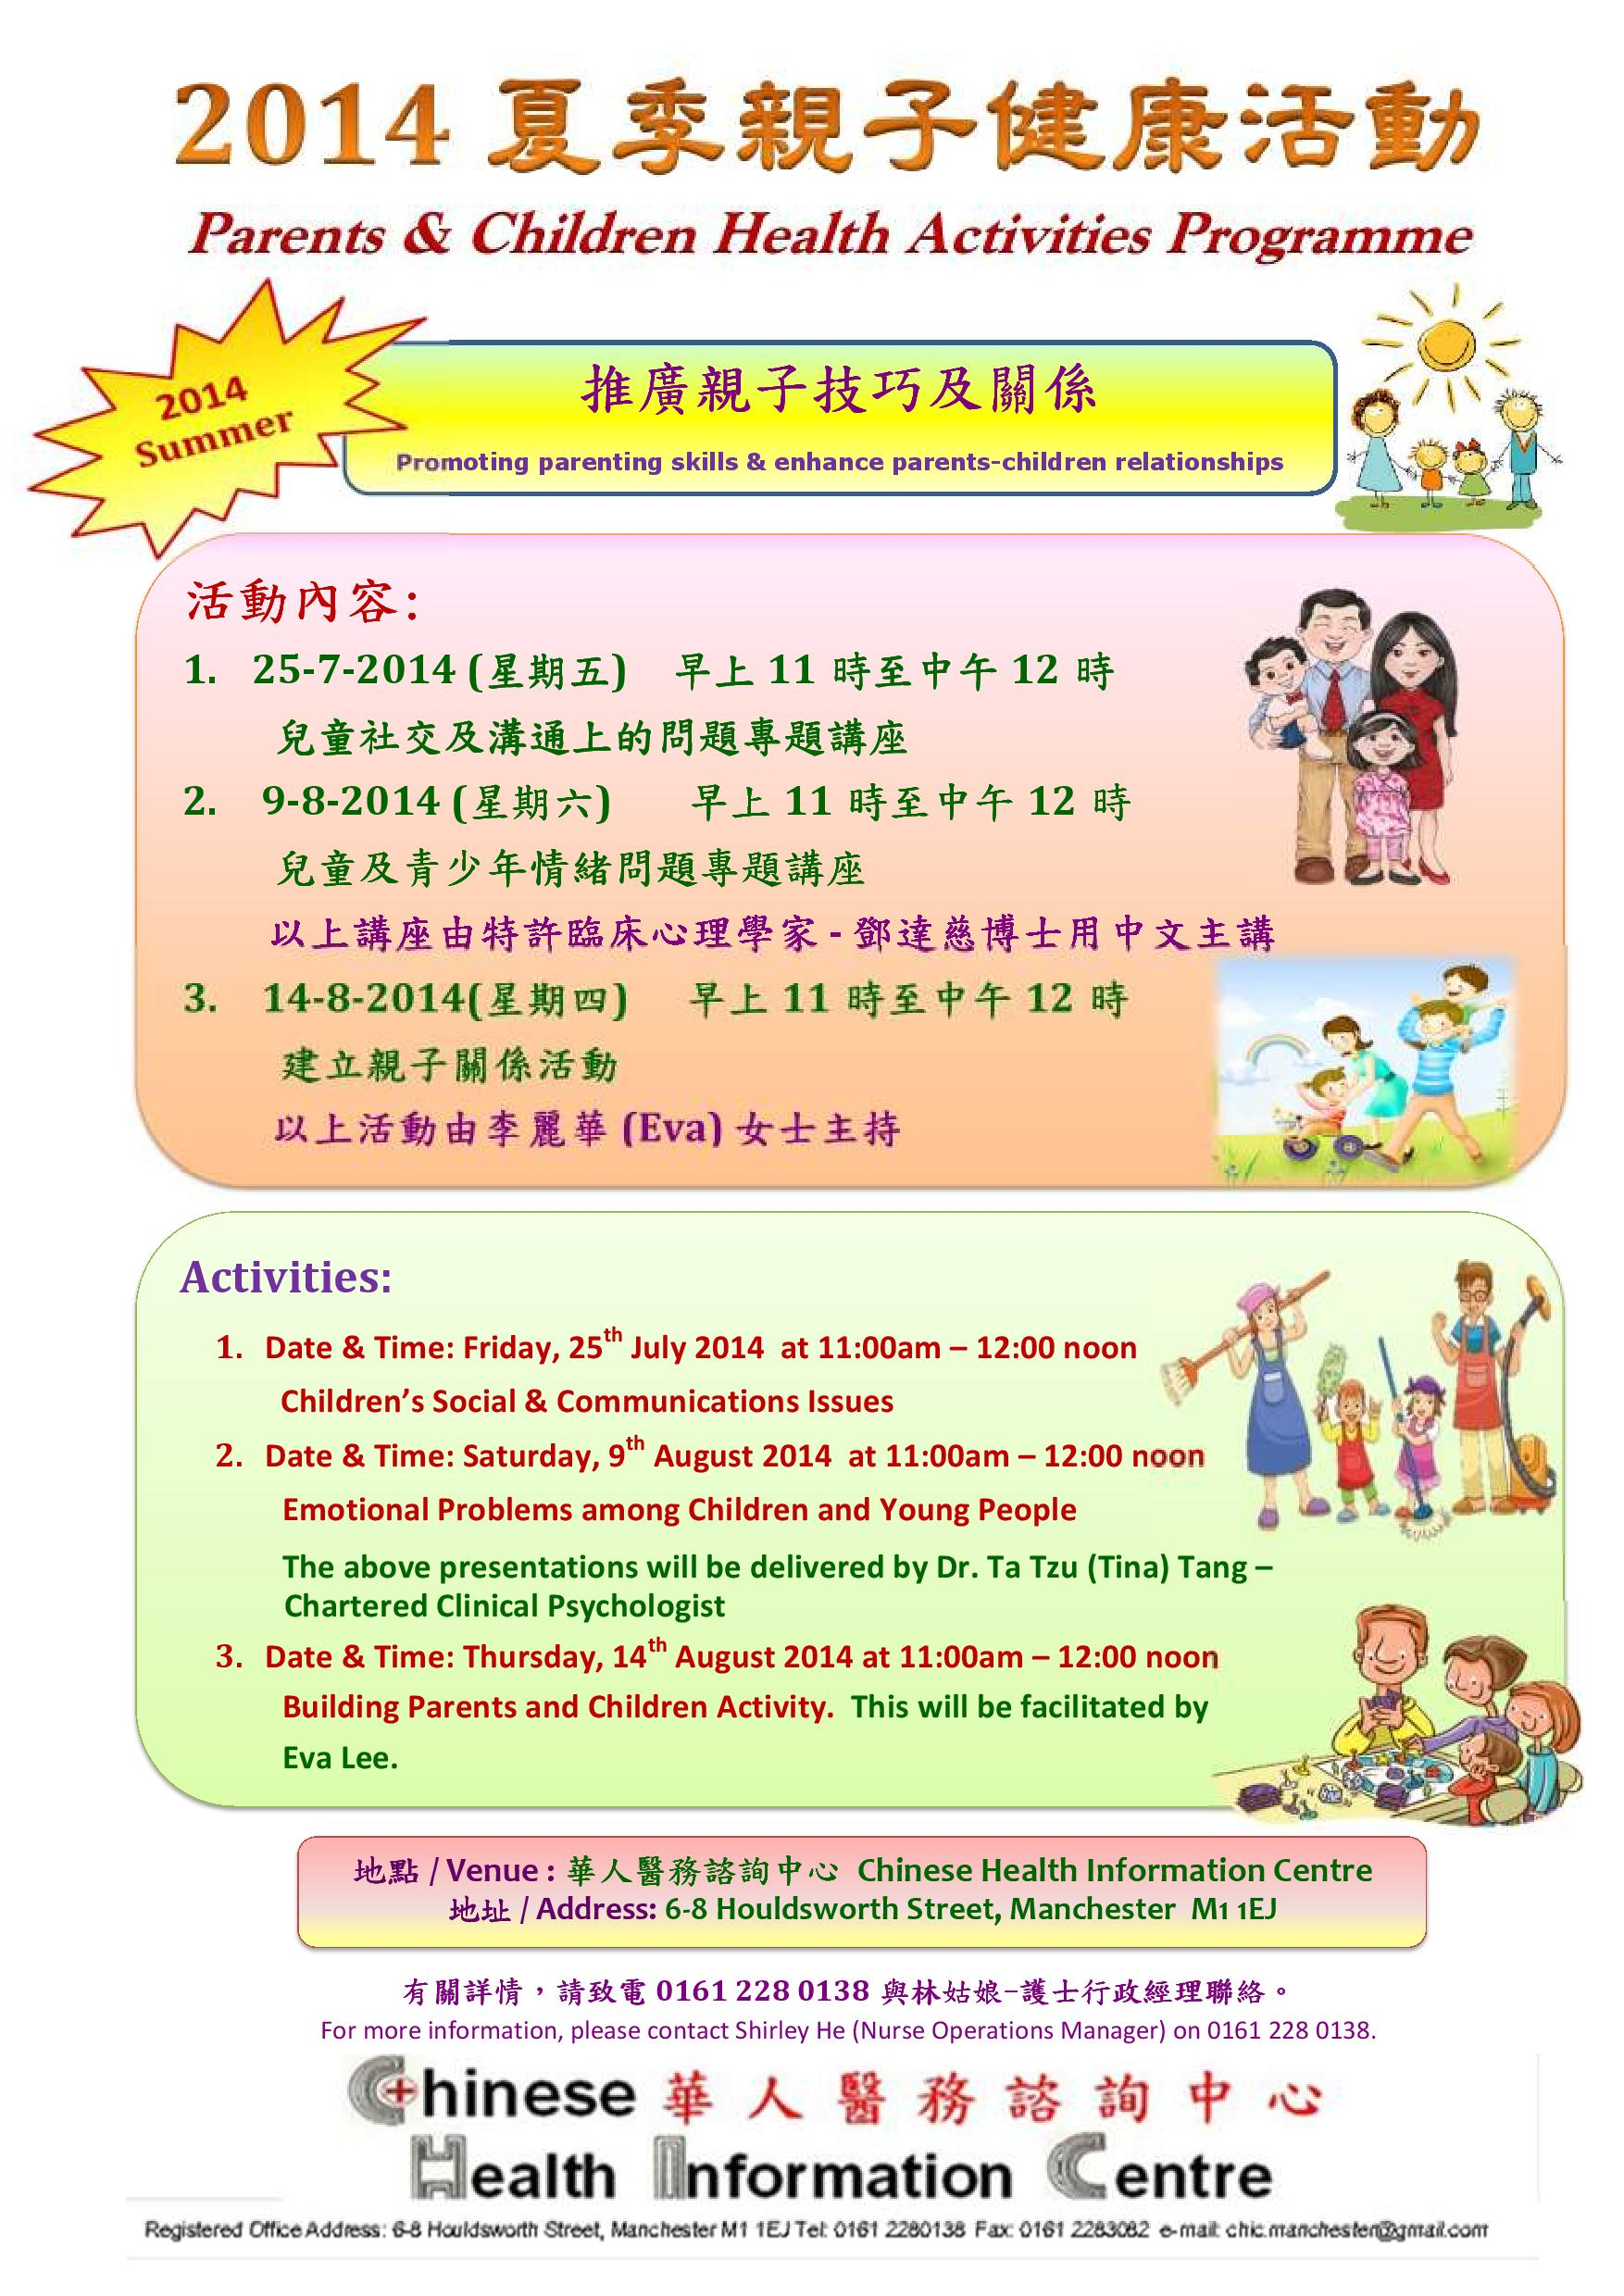 Parents & Children Activities Programme